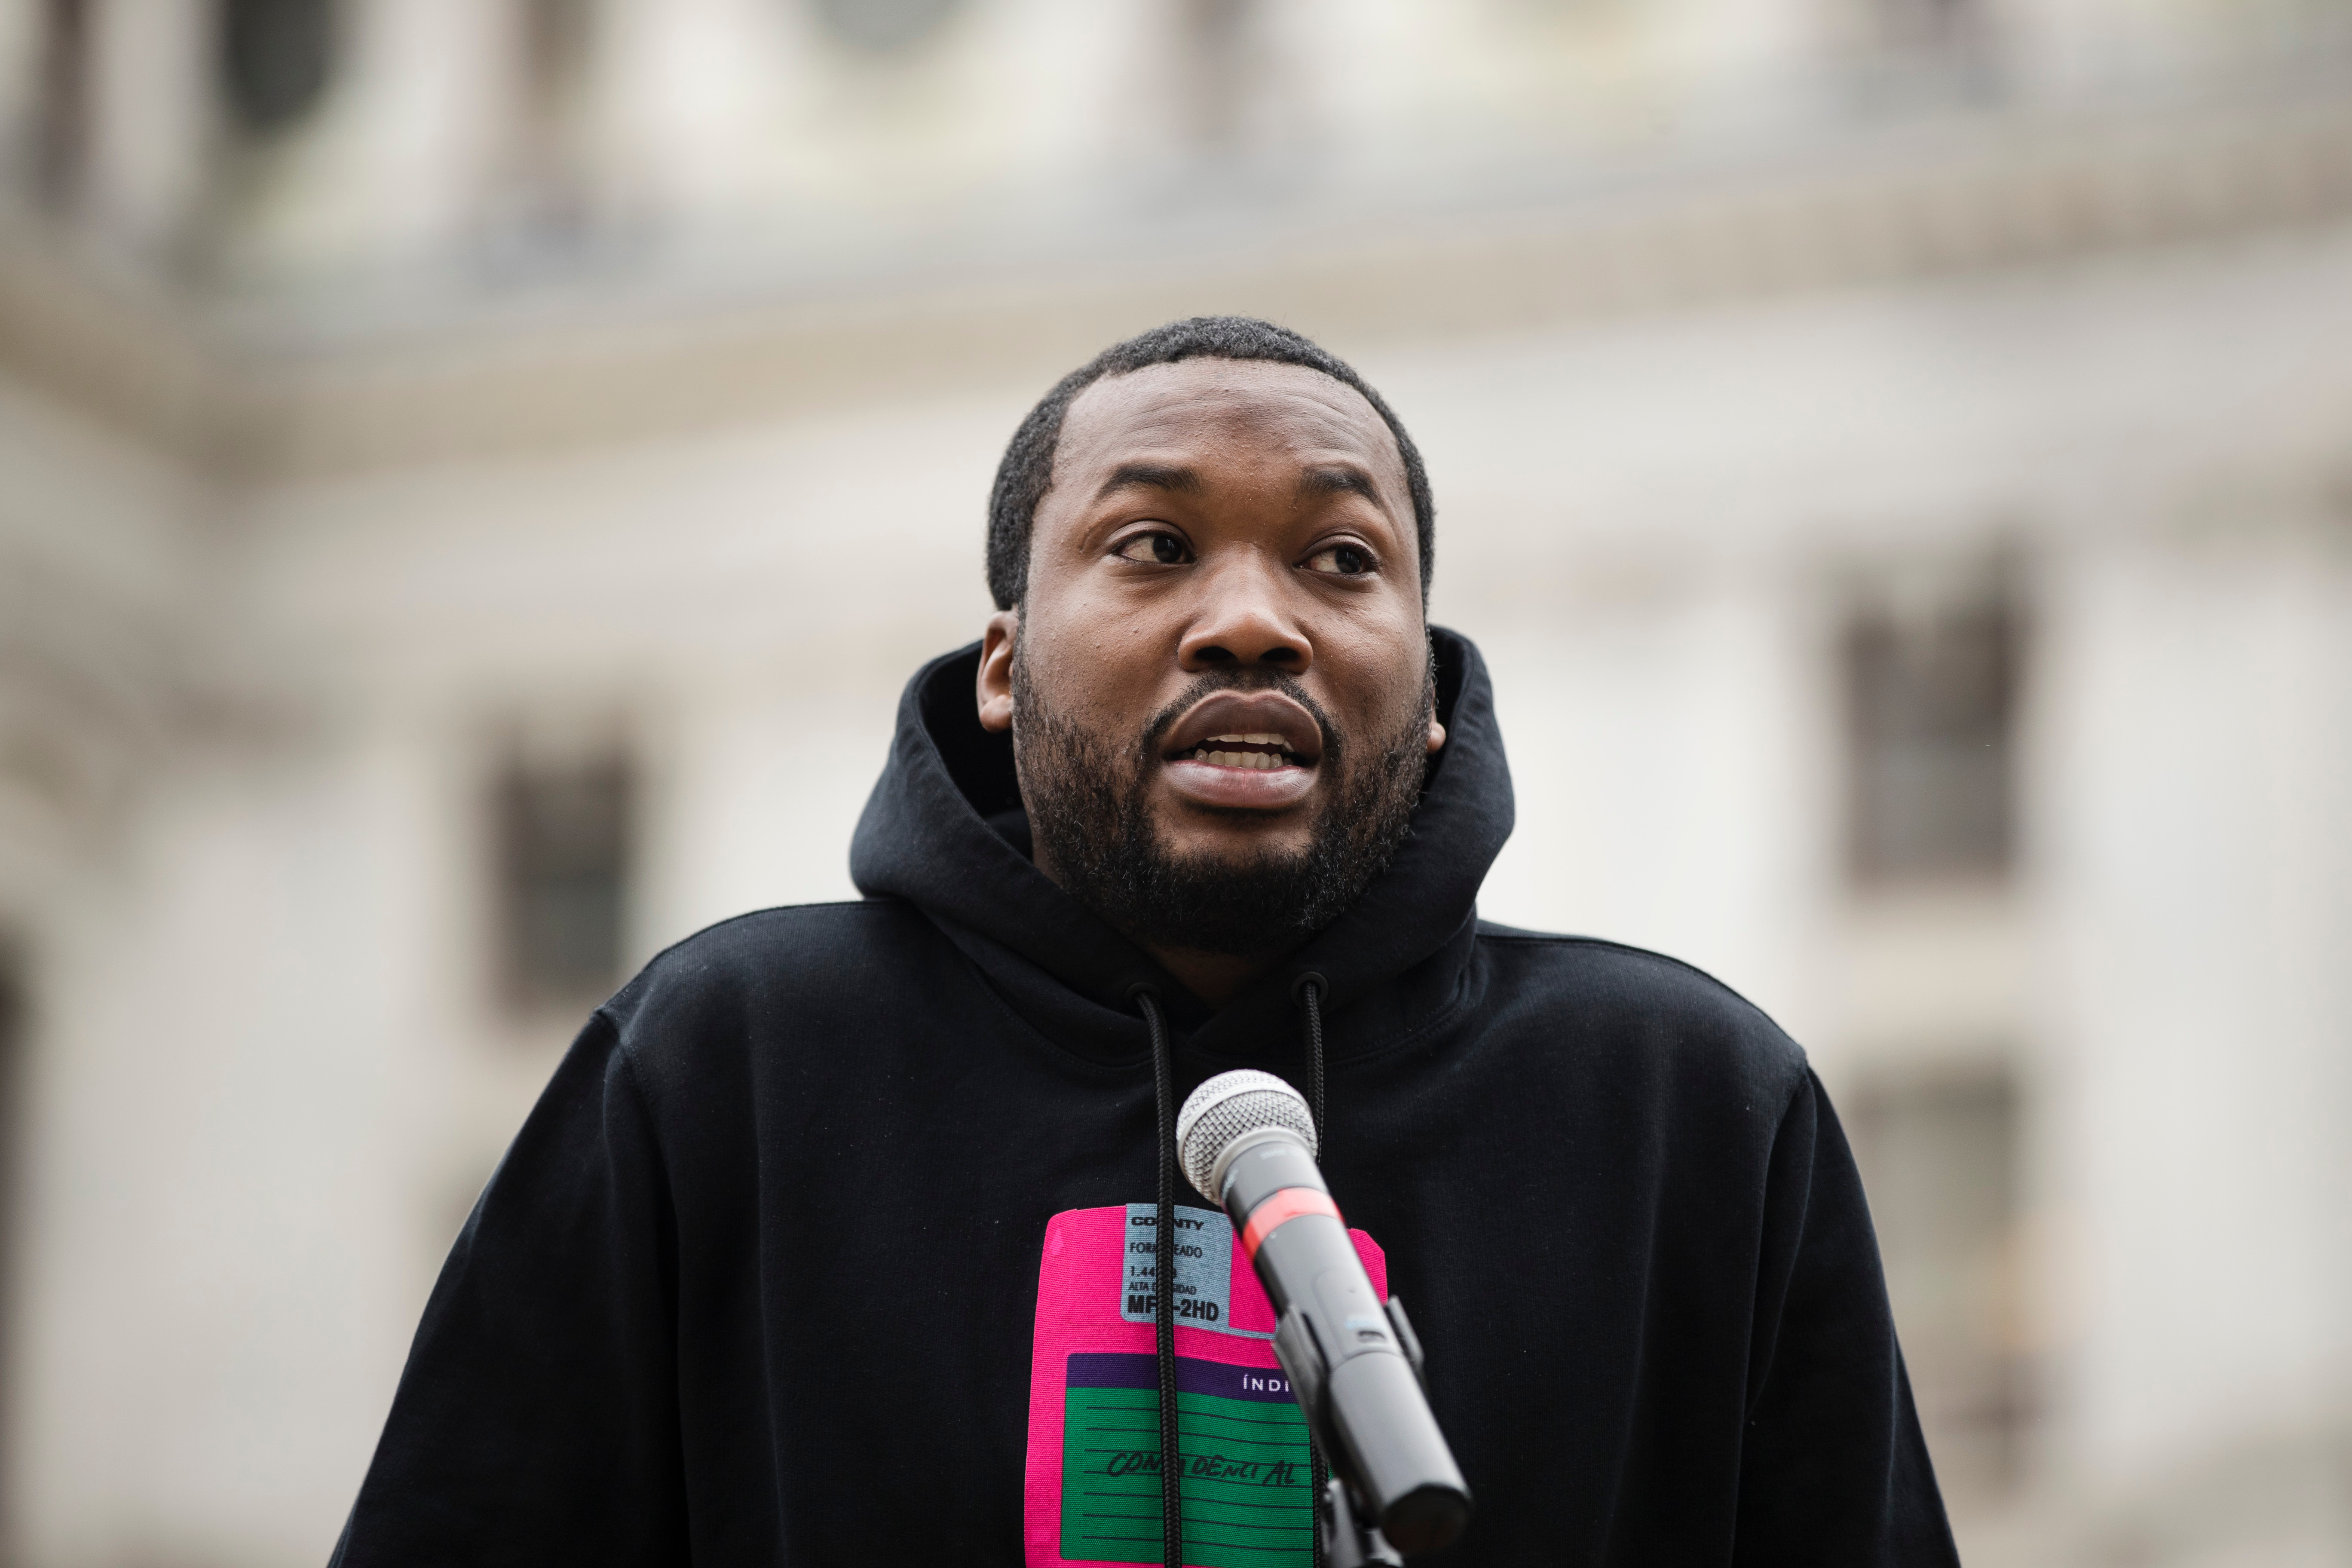 Meek Mill Blasts 'Racist as Hell' Las Vegas Hotel for Banning Him 'Without Incident'